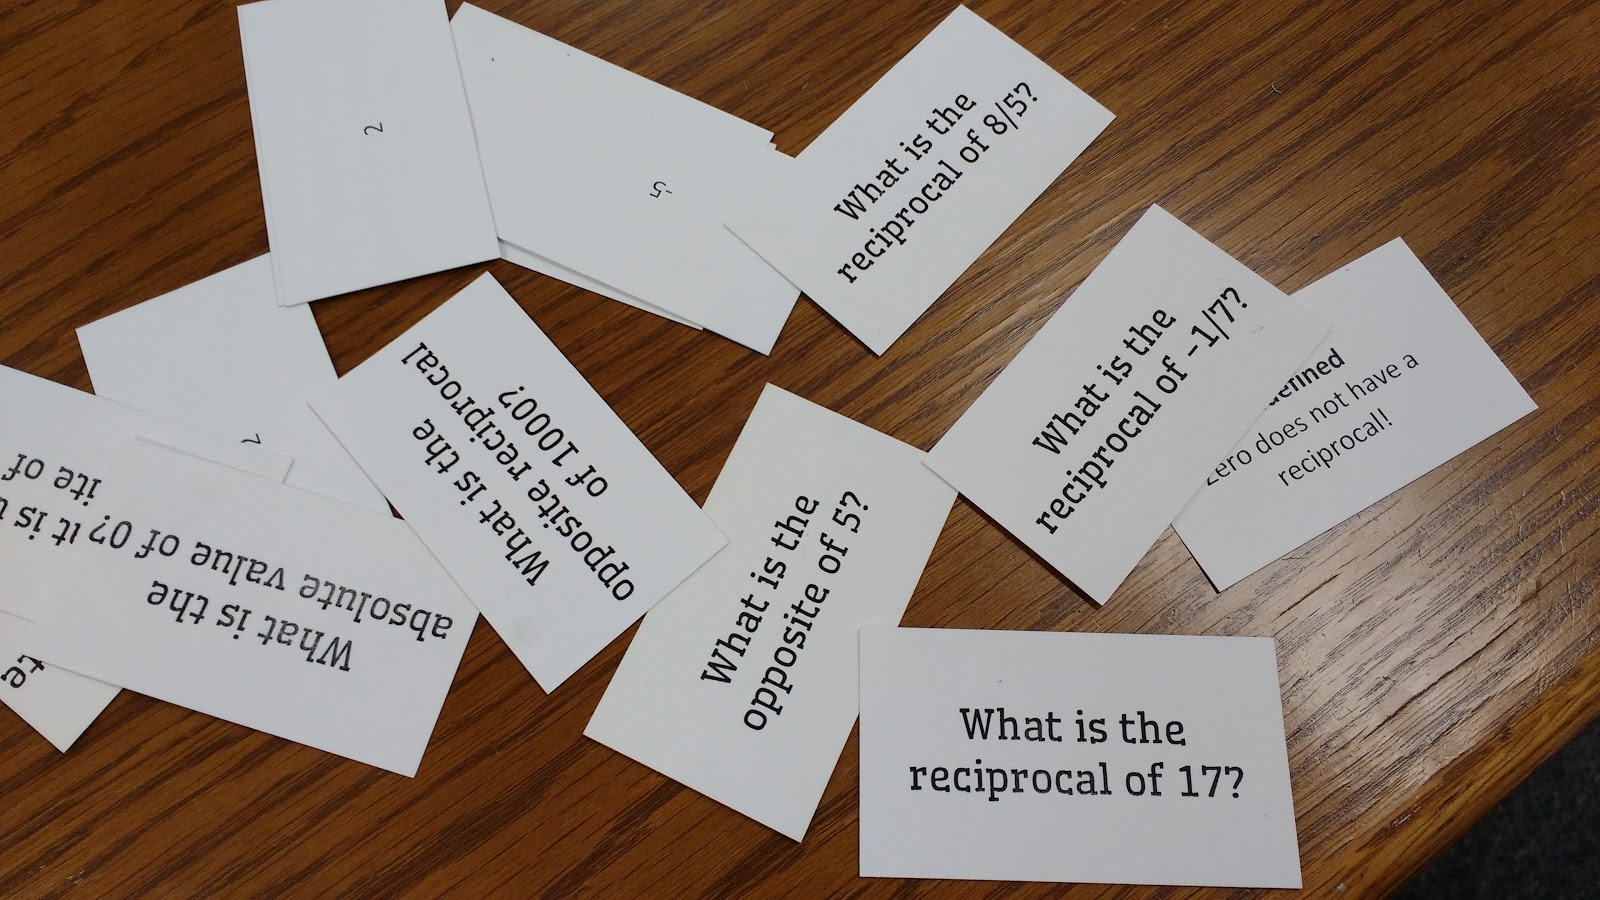 Math Love Speed Dating Activity For Absolute Value Opposite Reciprocal And Opposite Reciprocal